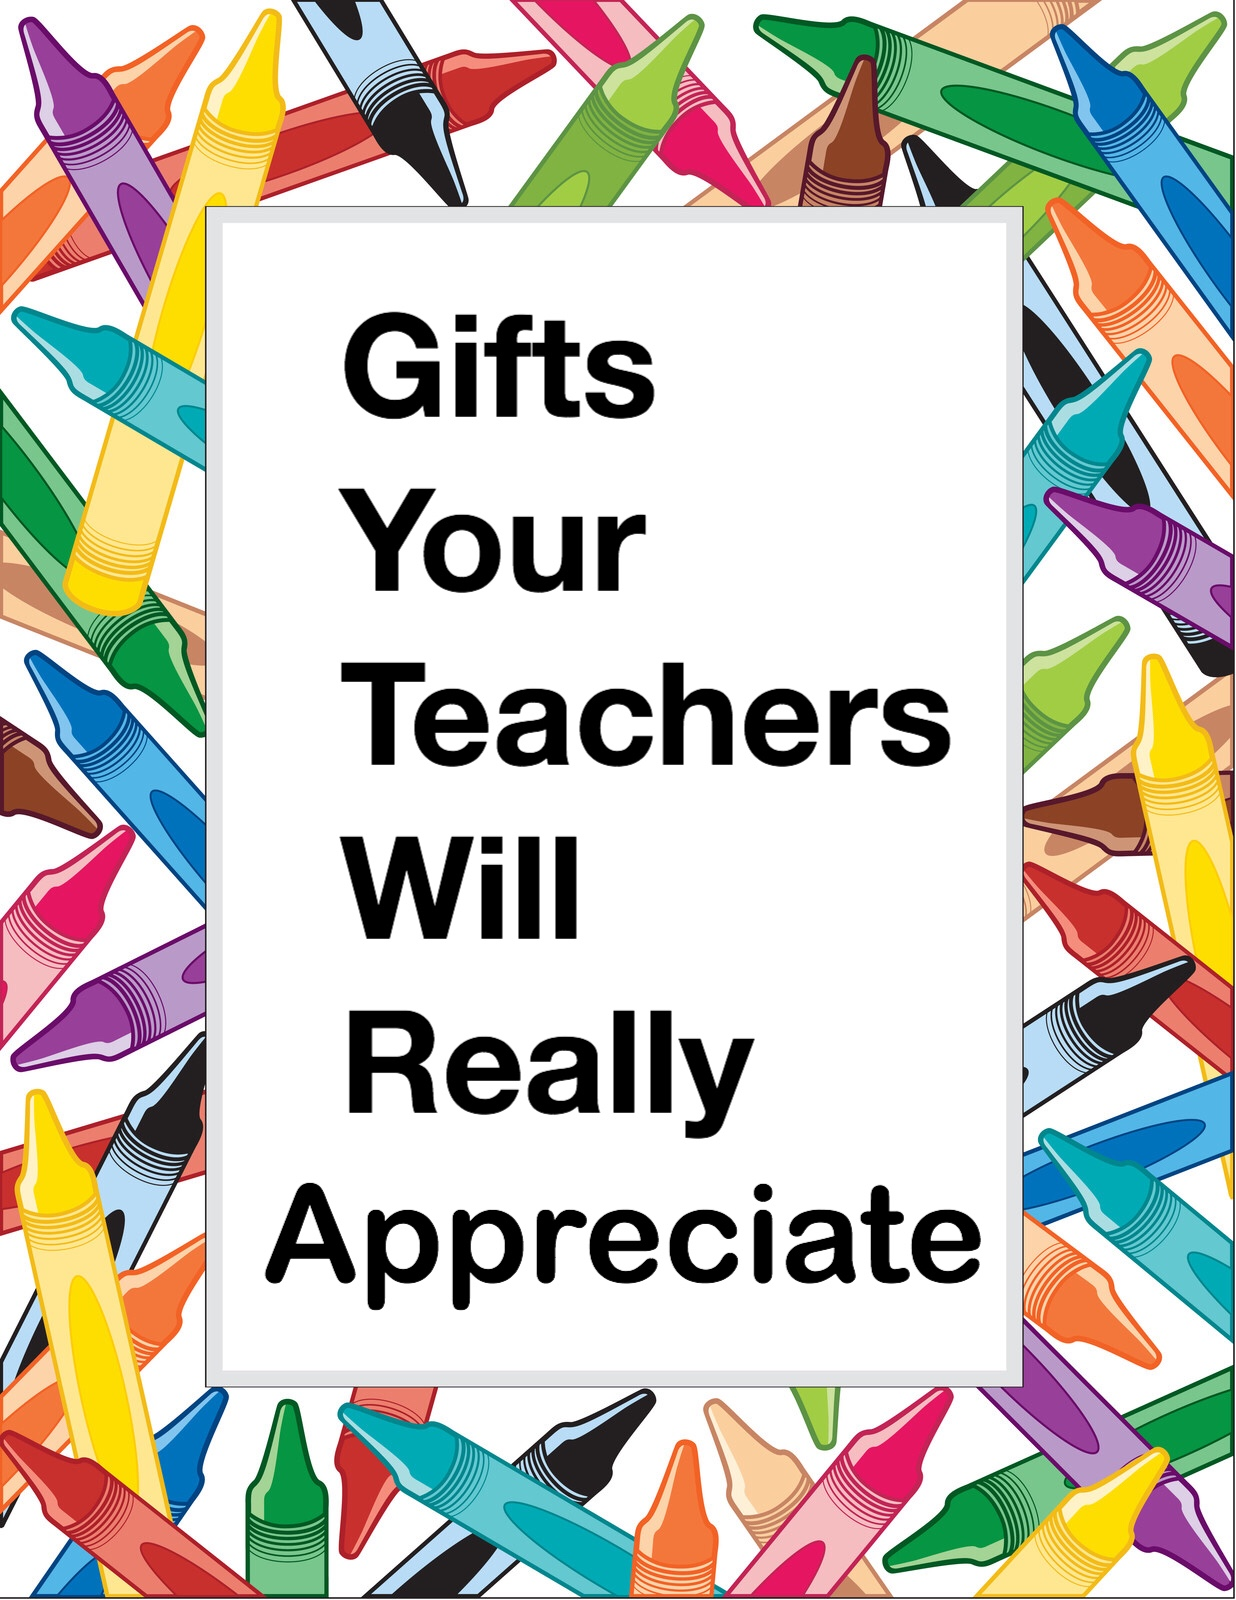 Gifts Your Teachers Will Really Appreciate Pin